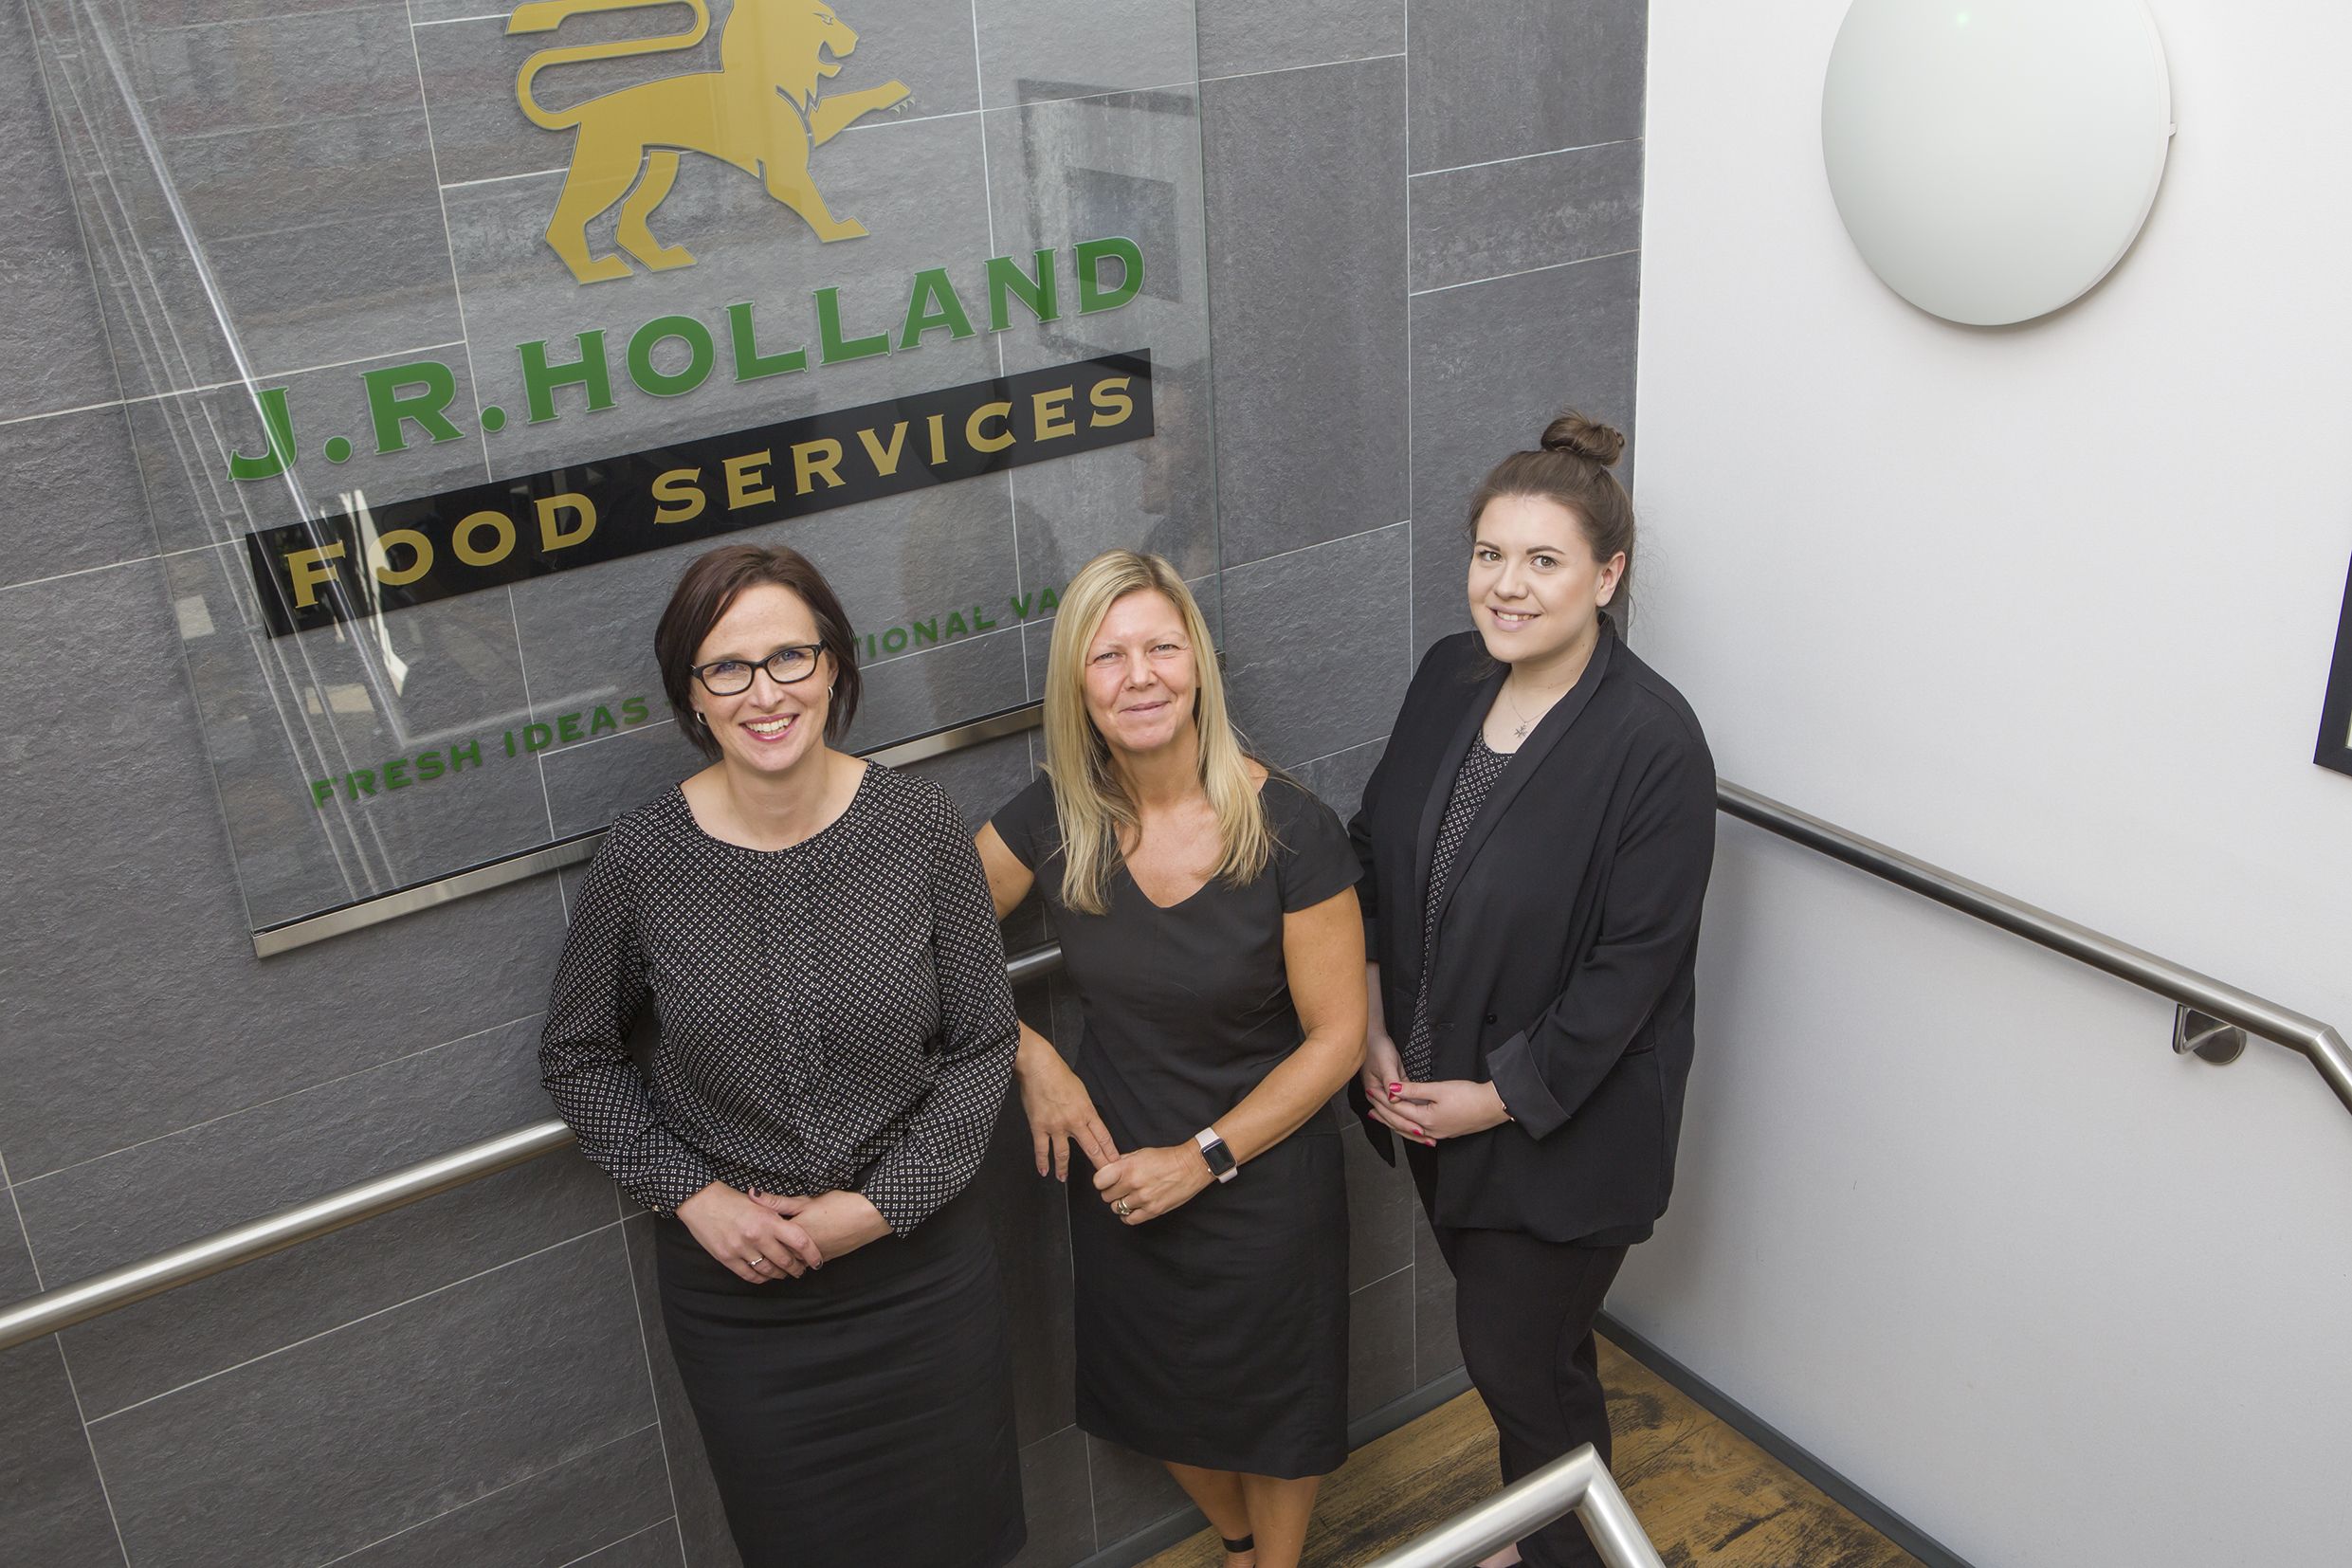 Our Accounts Team - JR Holland